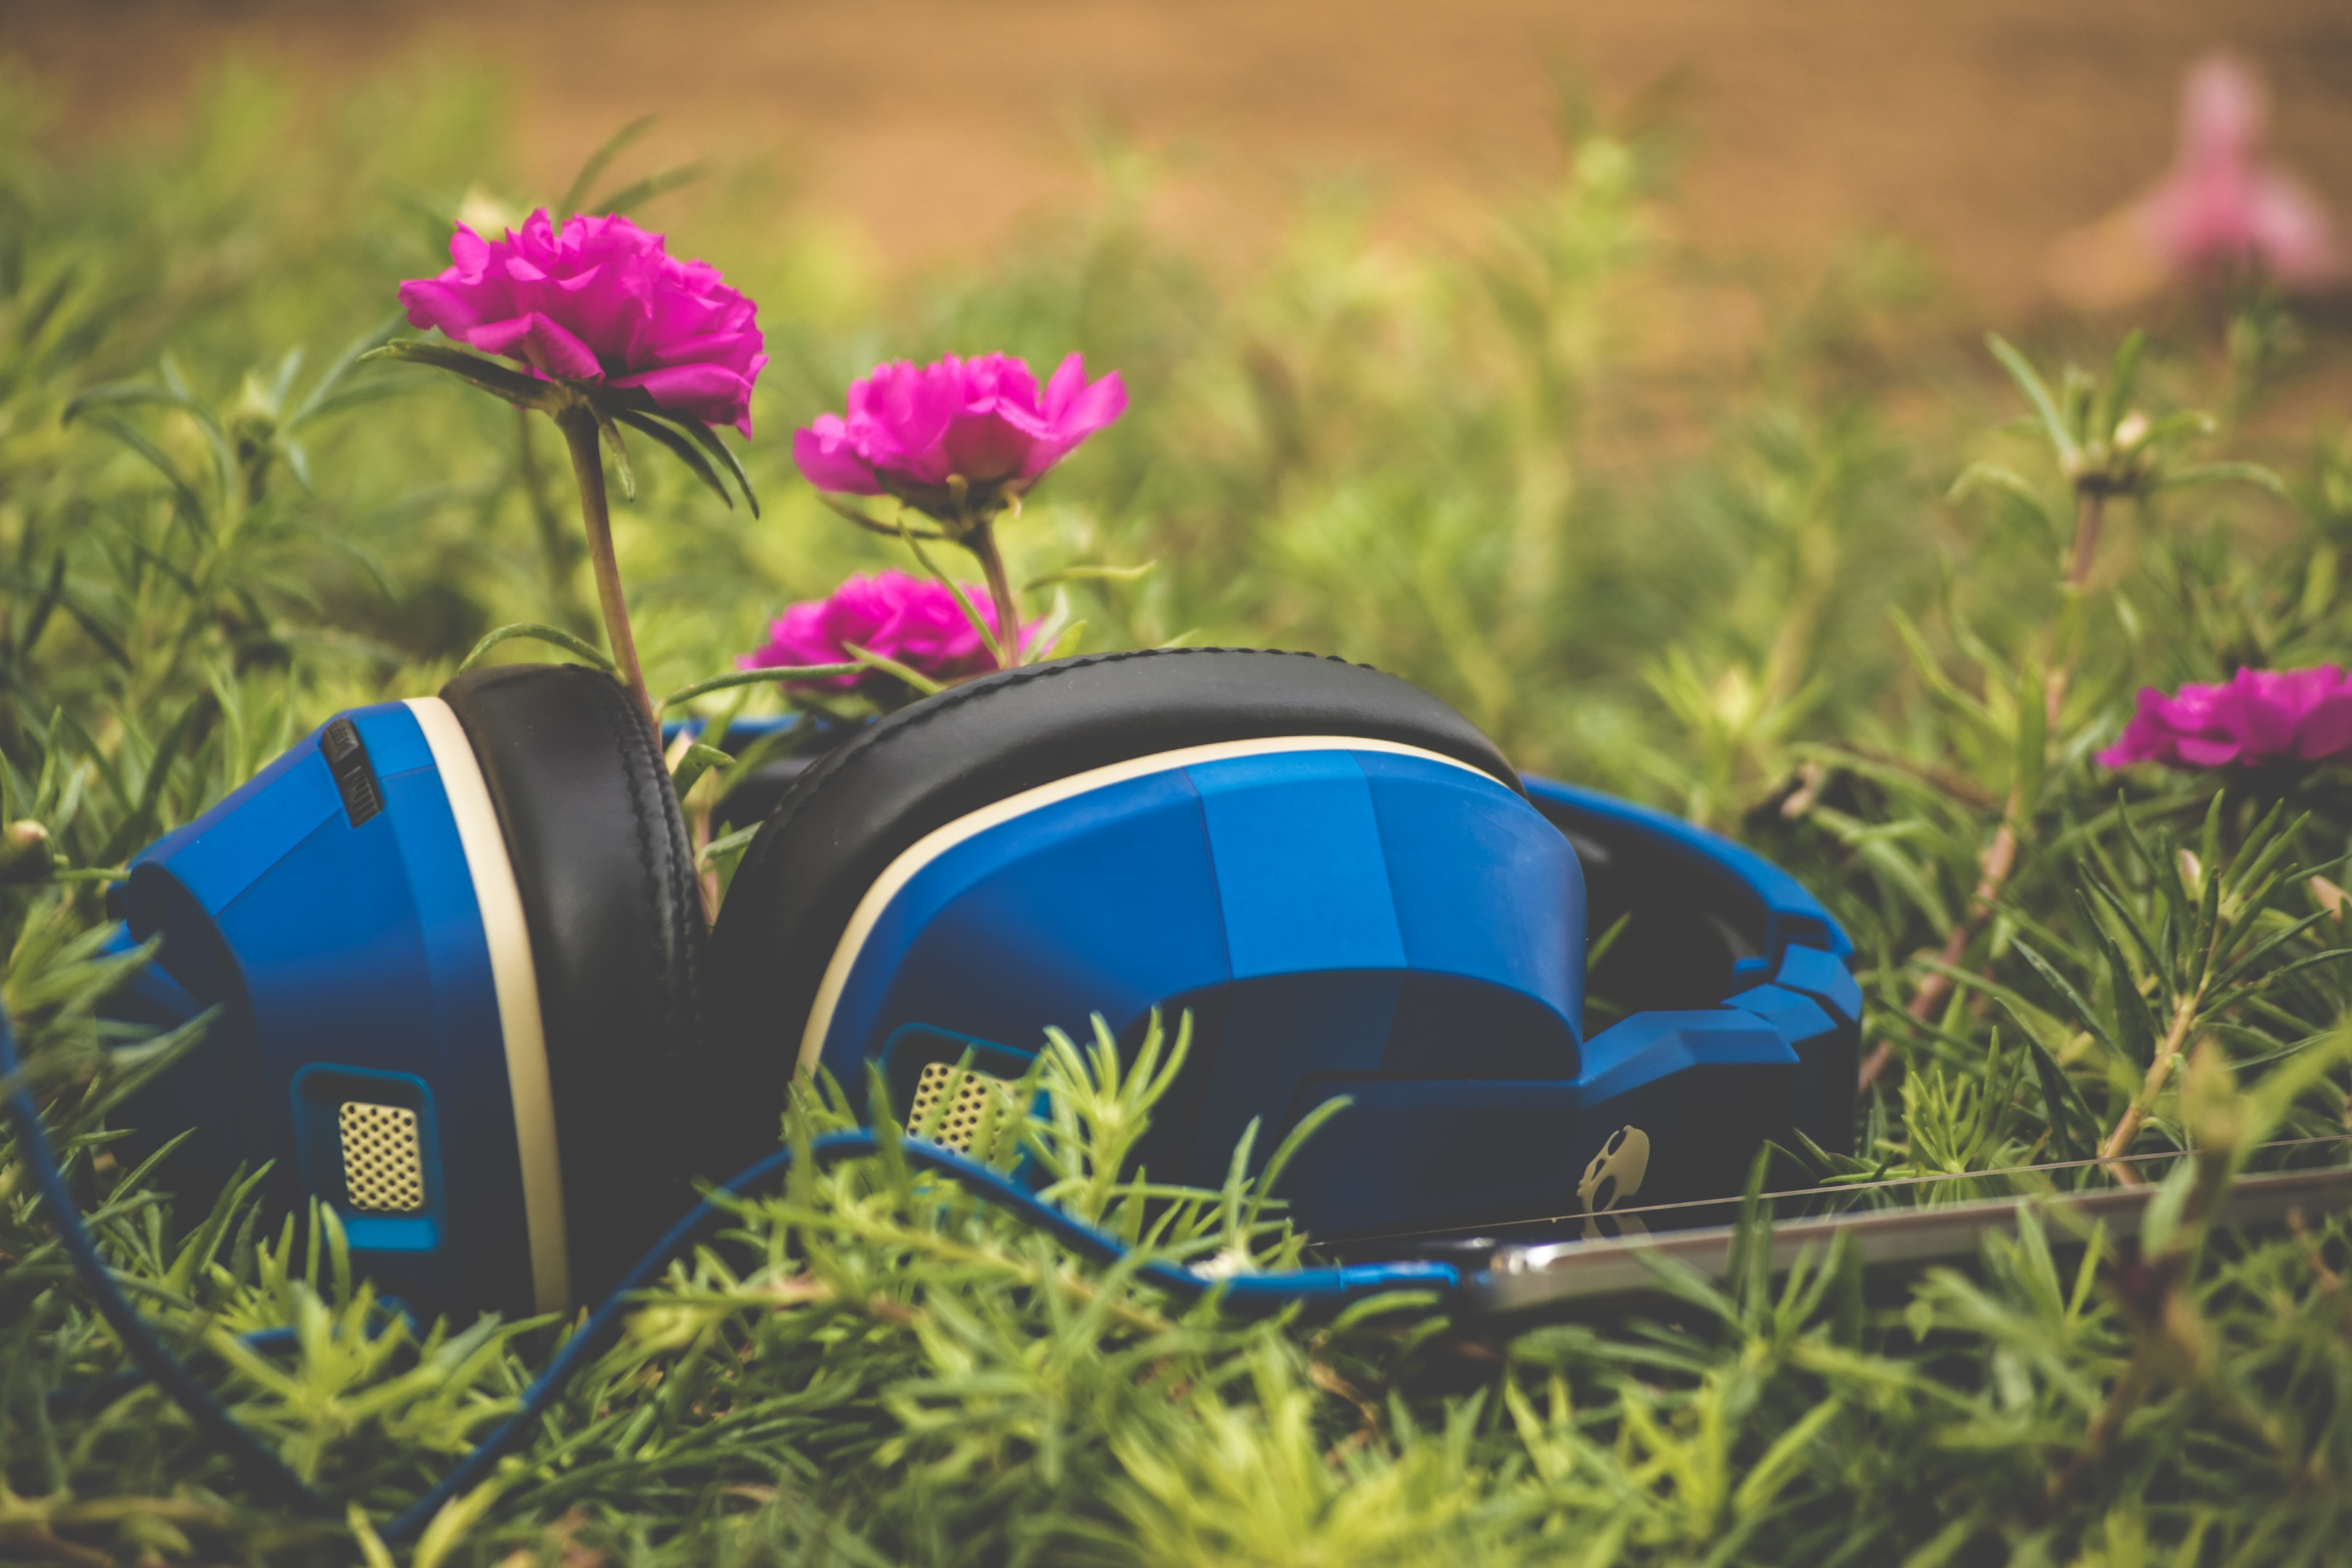 focus photography of blue headphones on grass